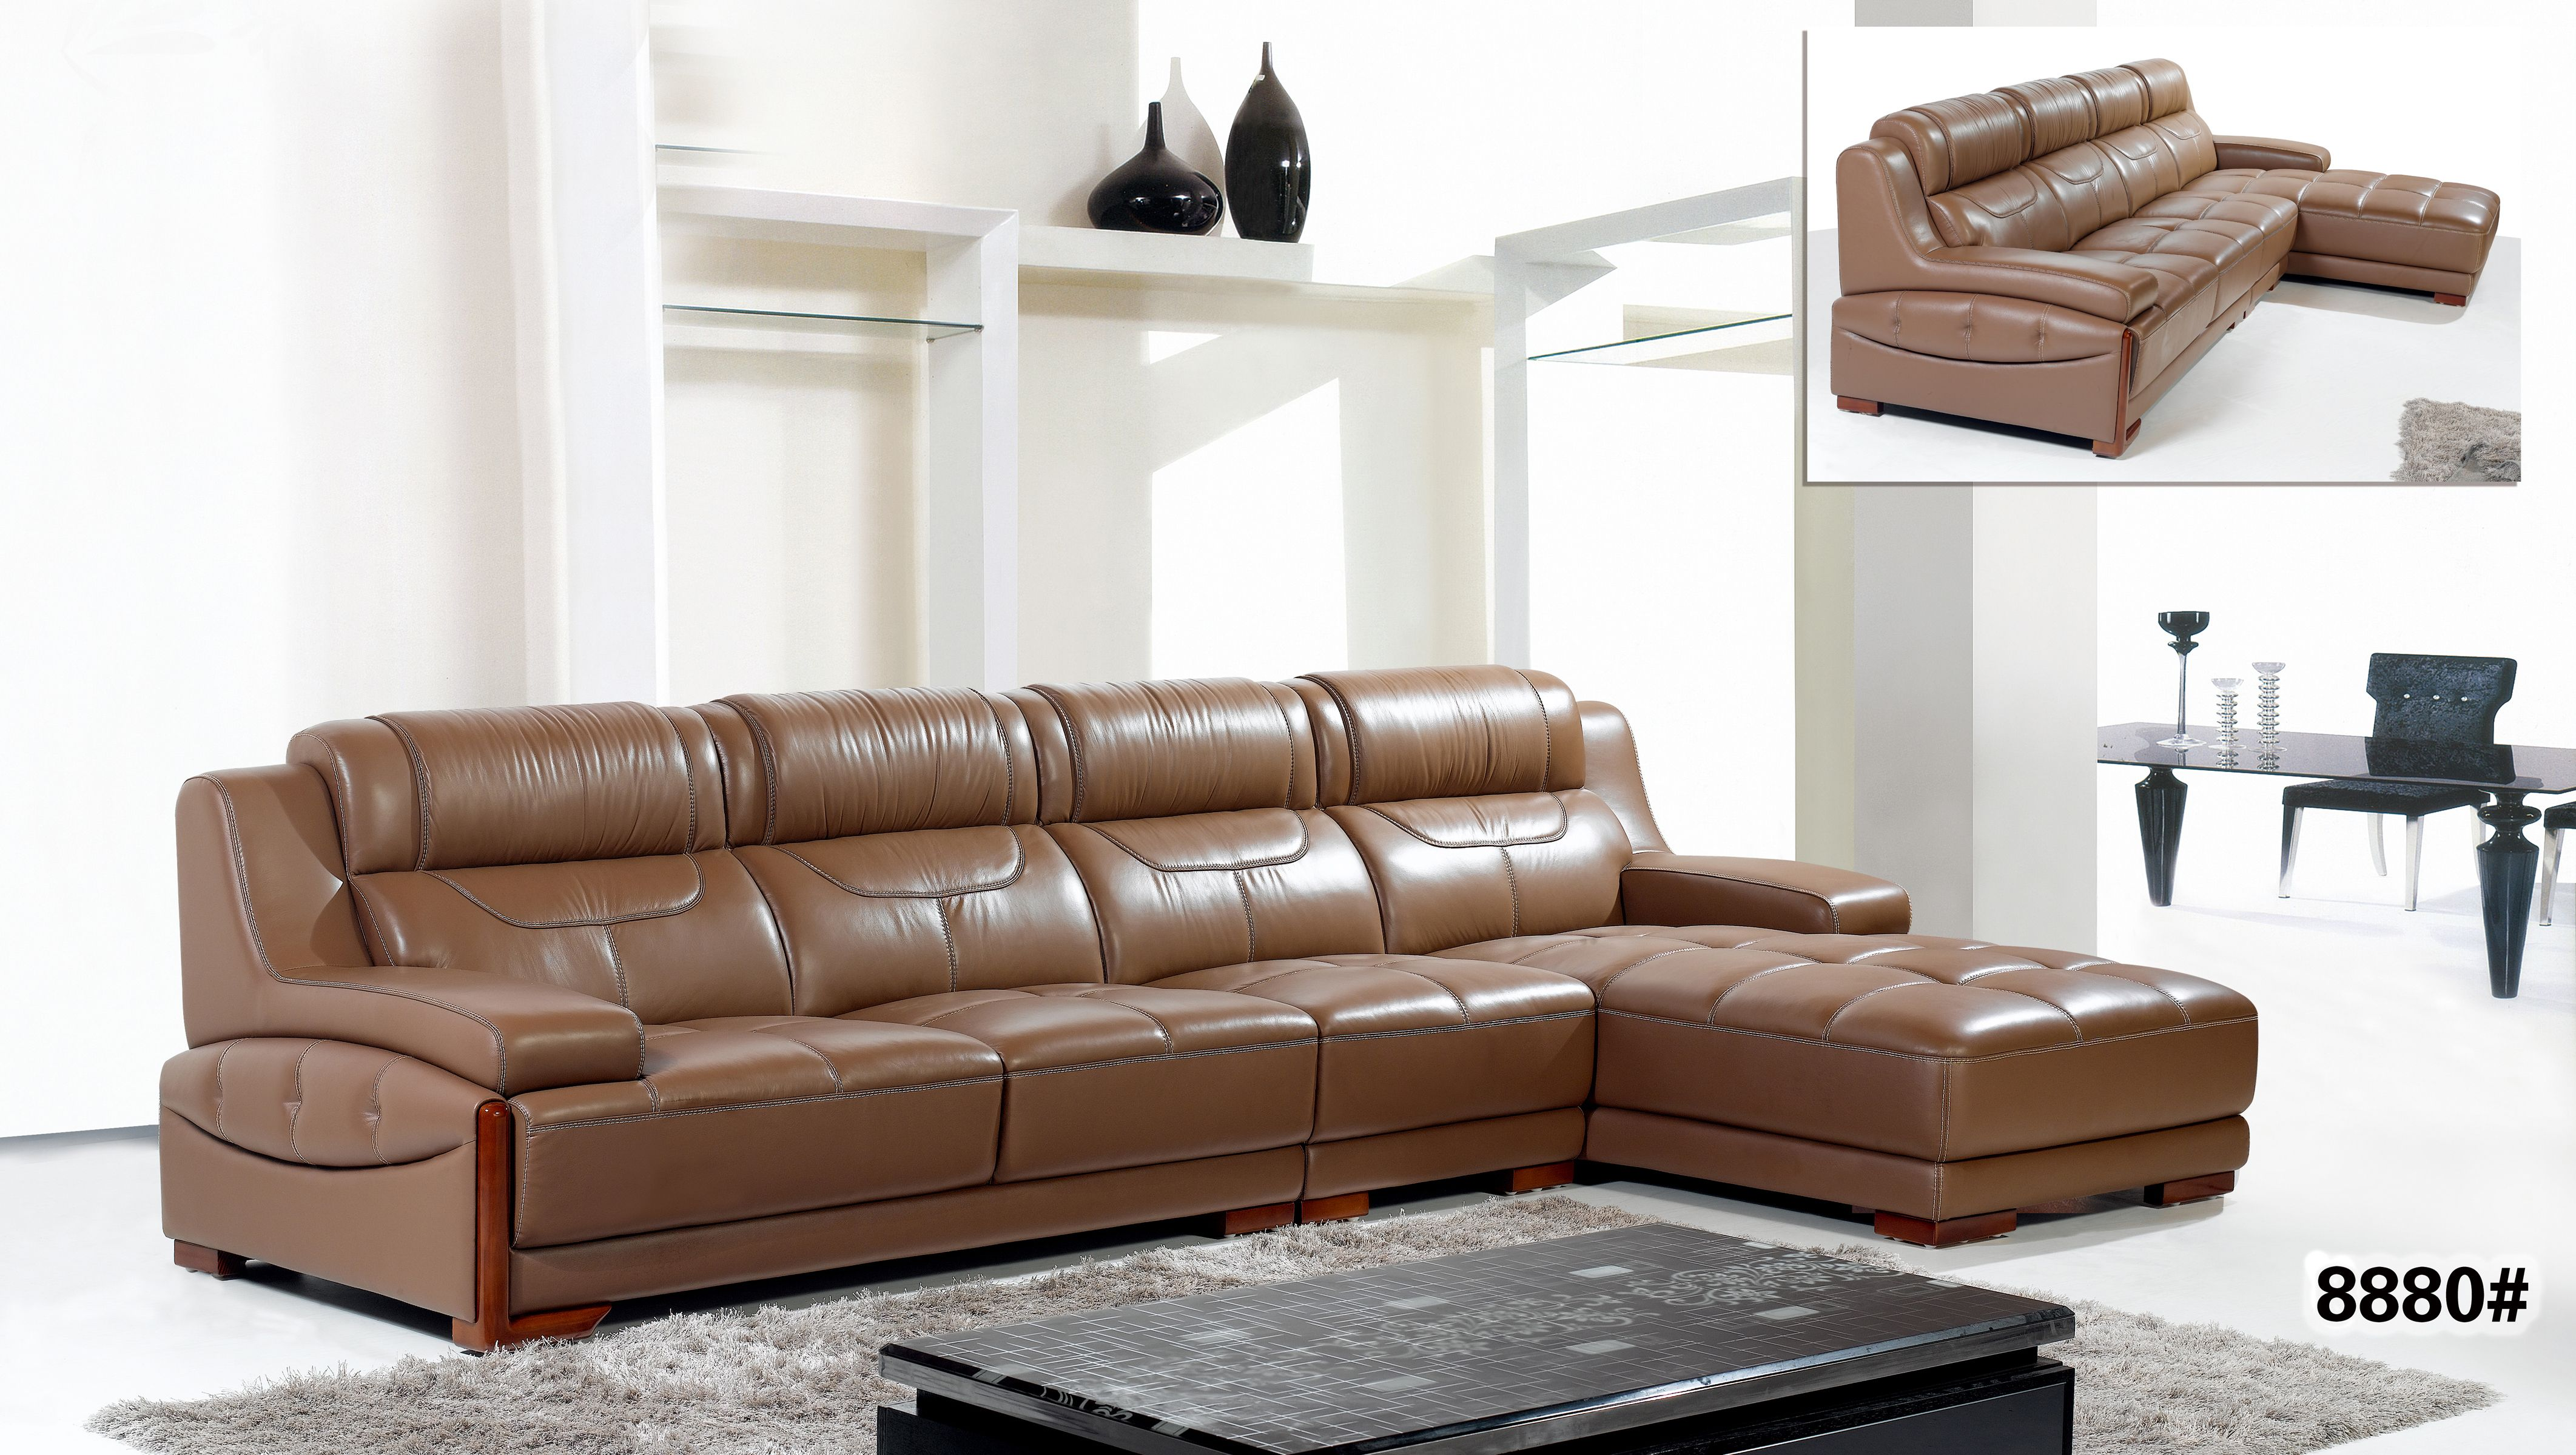 Come And Take A Look At Our Stylish And Affordable Sofa We Offer